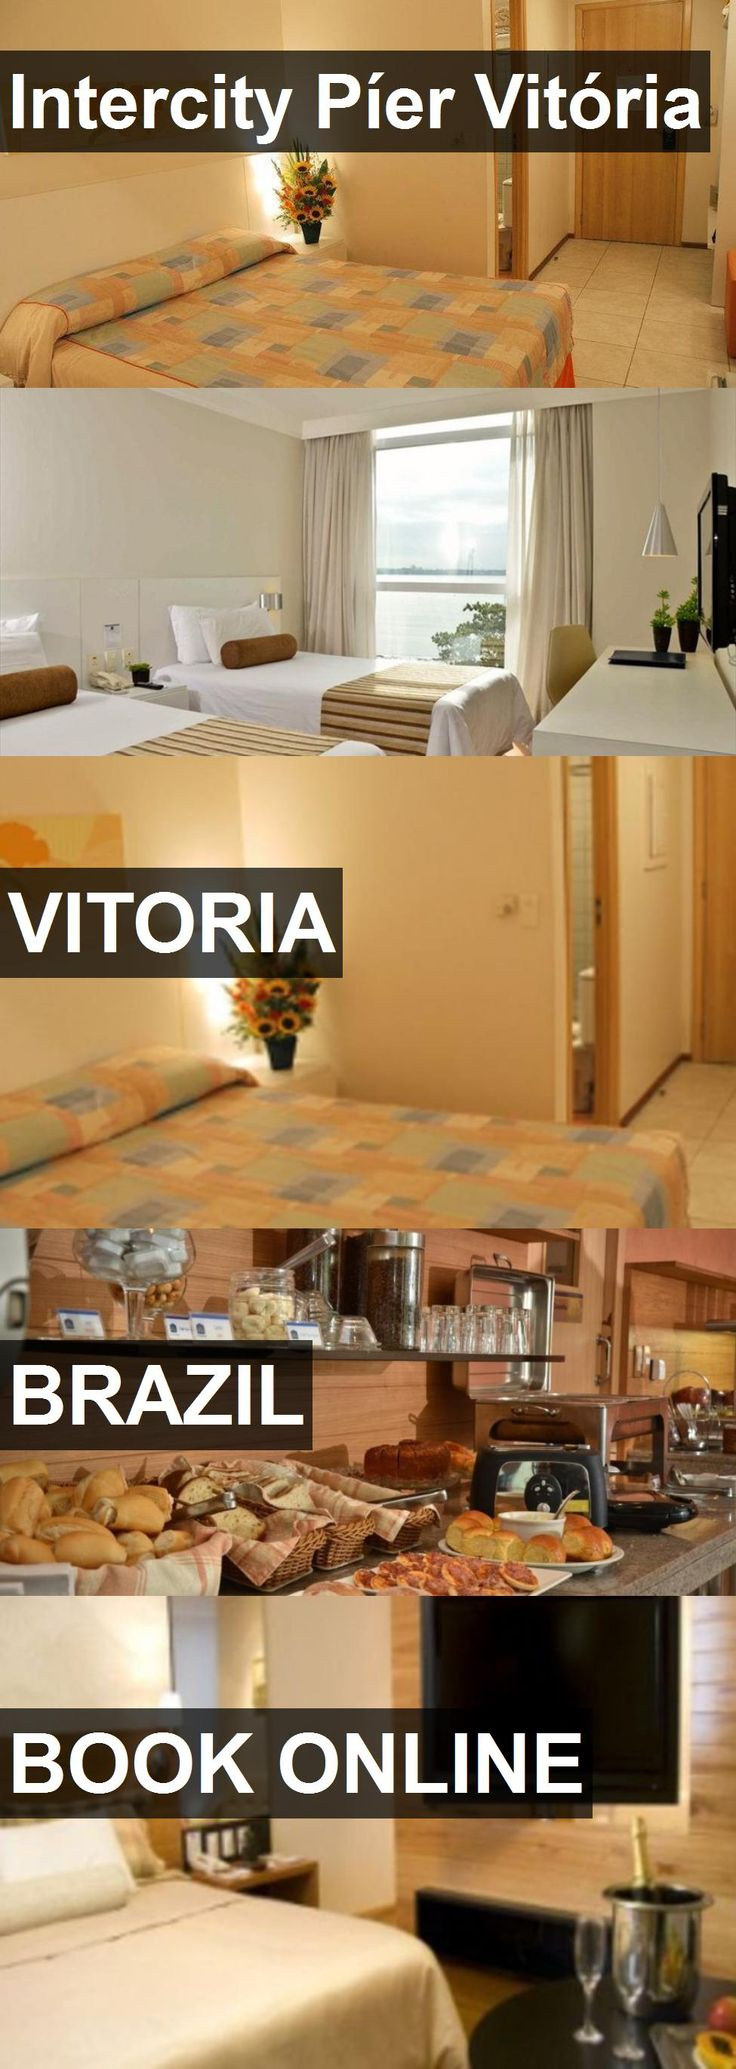 Hotel Intercity Píer Vitória in Vitoria, Brazil. For more information, photos, reviews and best prices please follow the link. #Brazil #Vitoria #IntercityPíerVitória #hotel #travel #vacation